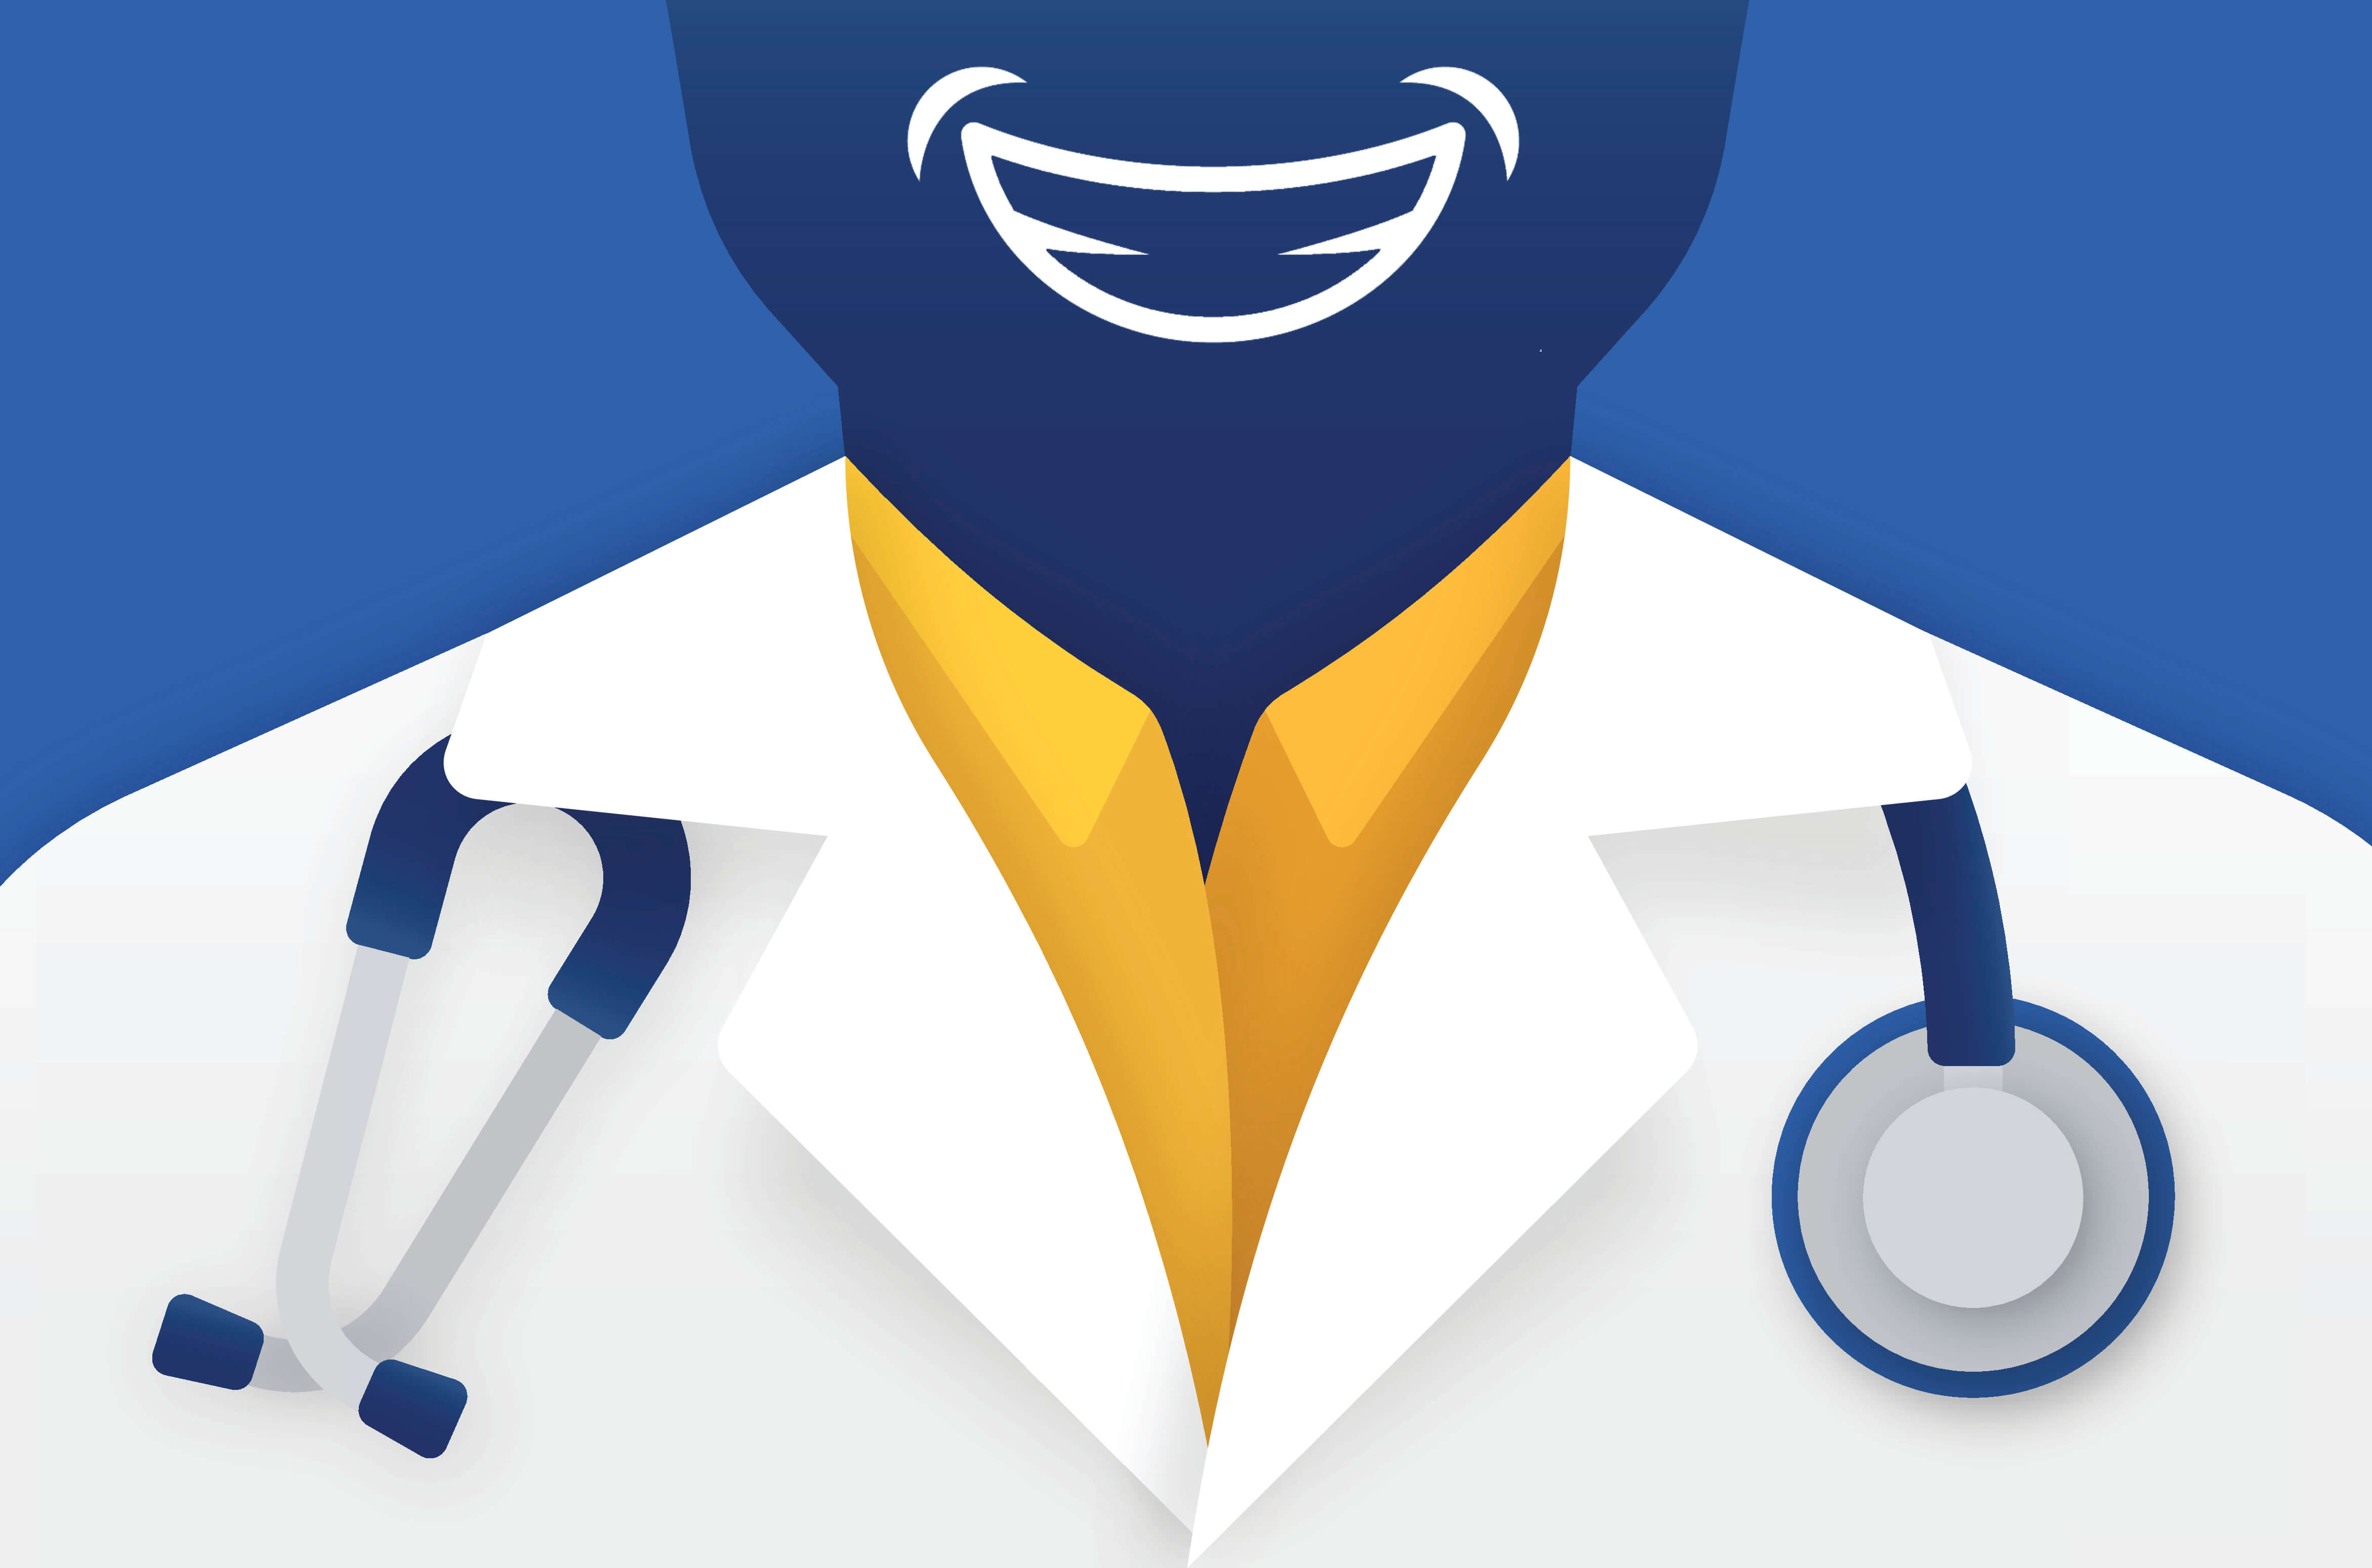 Doctor smiling graphic